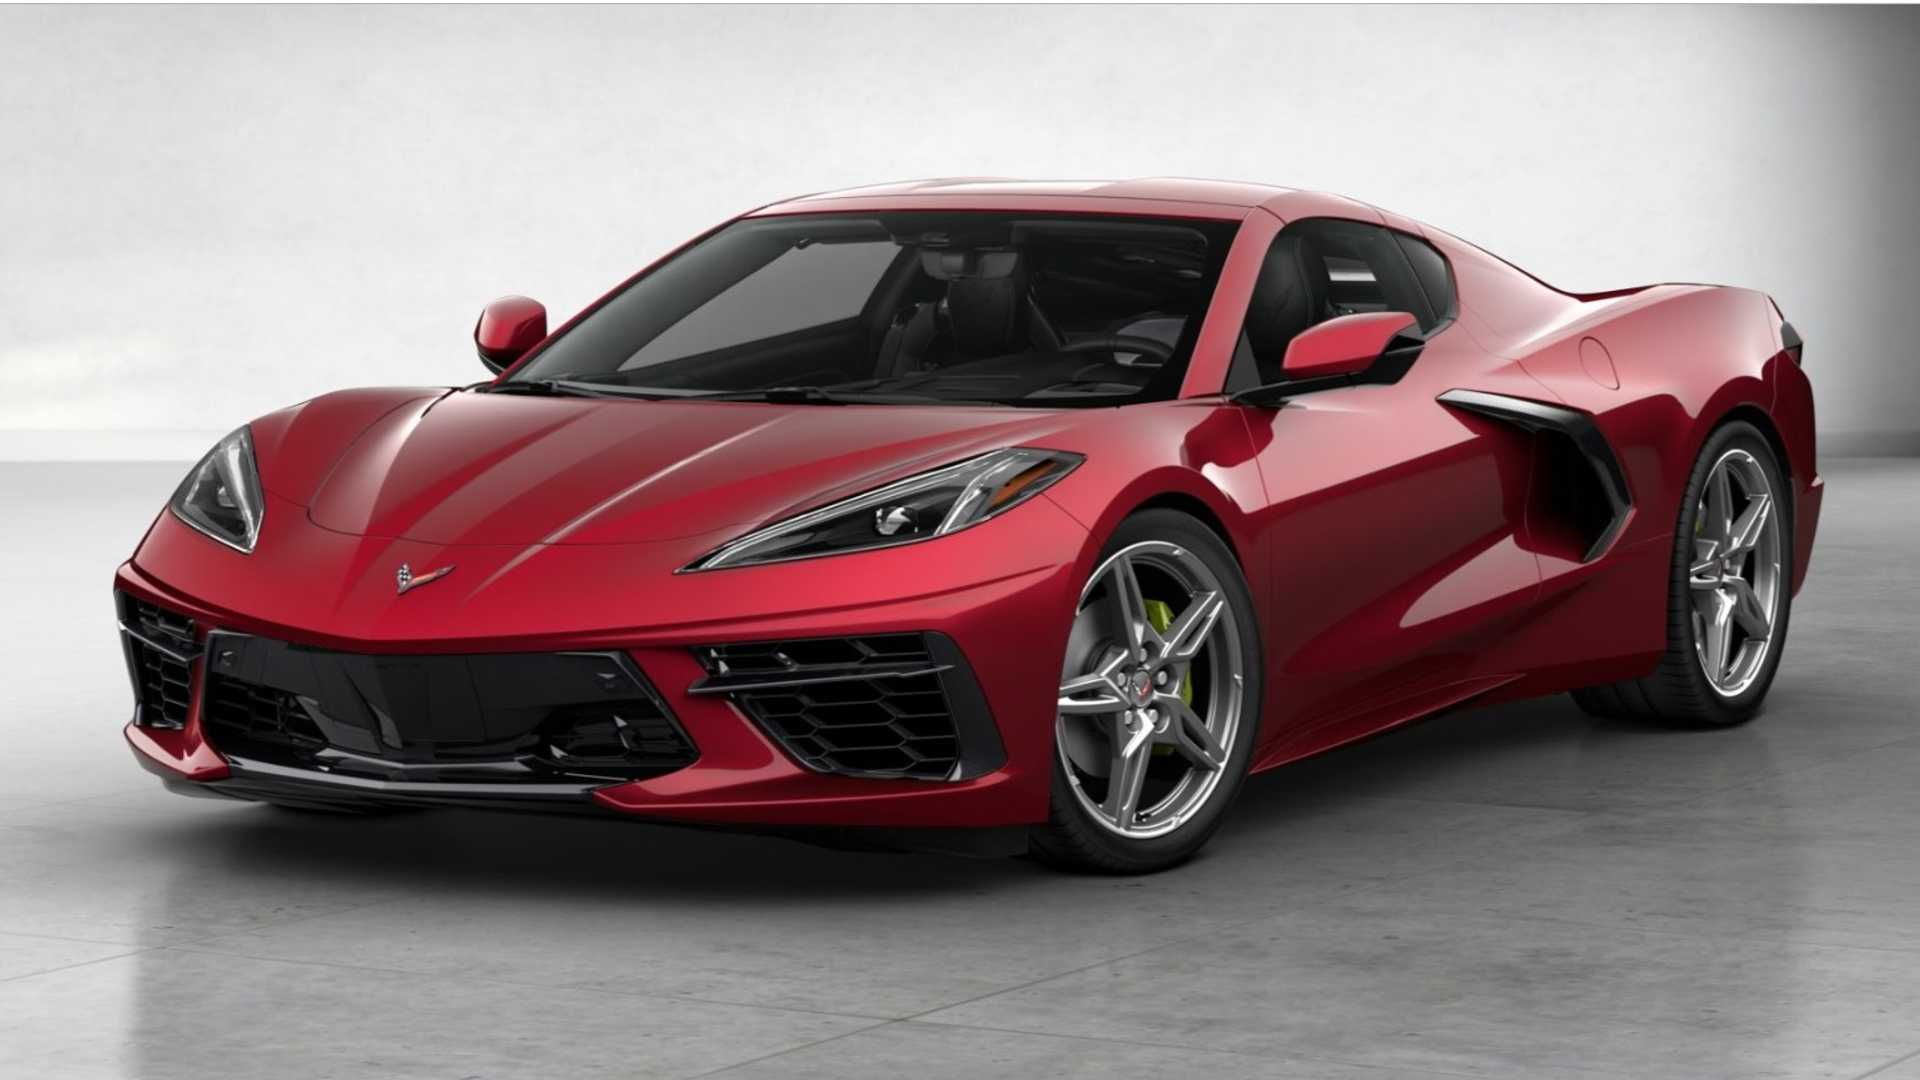 2021 Chevy Corvette C8 Getting New Colors, Stripes: Official